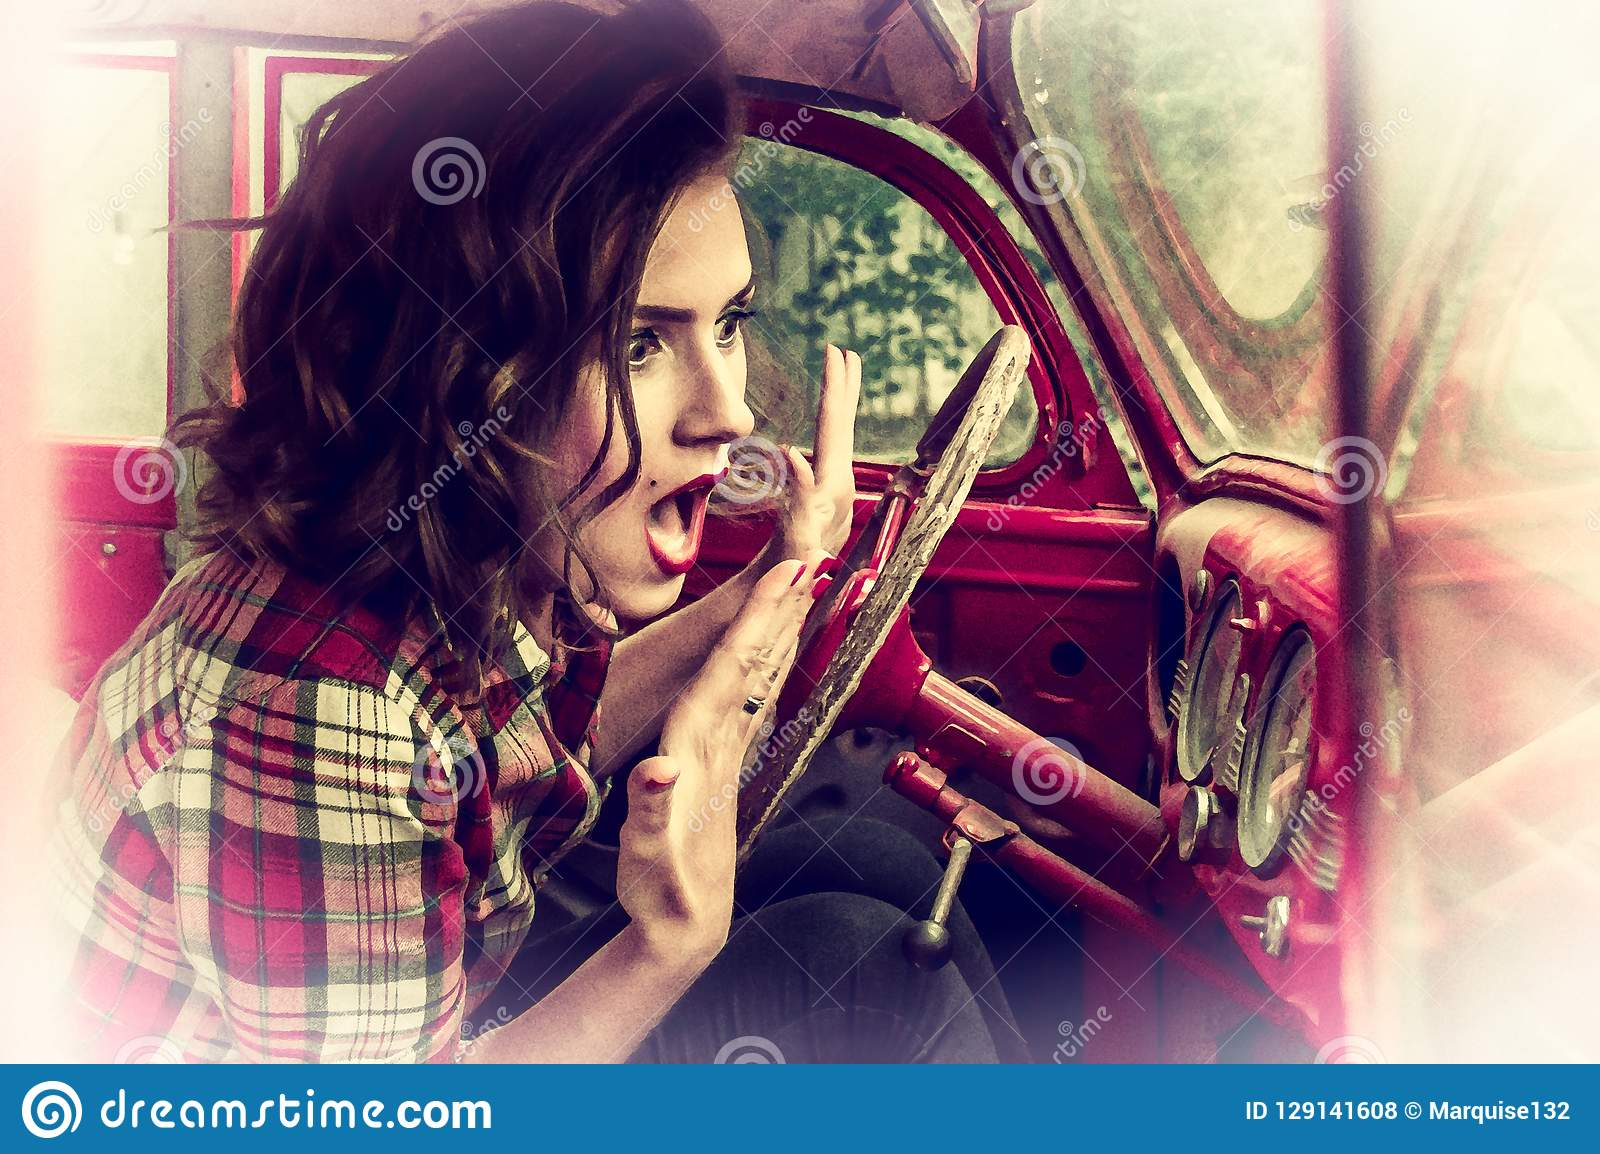 Beautiful pin-up girl in a plaid shirt is frightened and screaming, looking at the speedometer in the cabin of